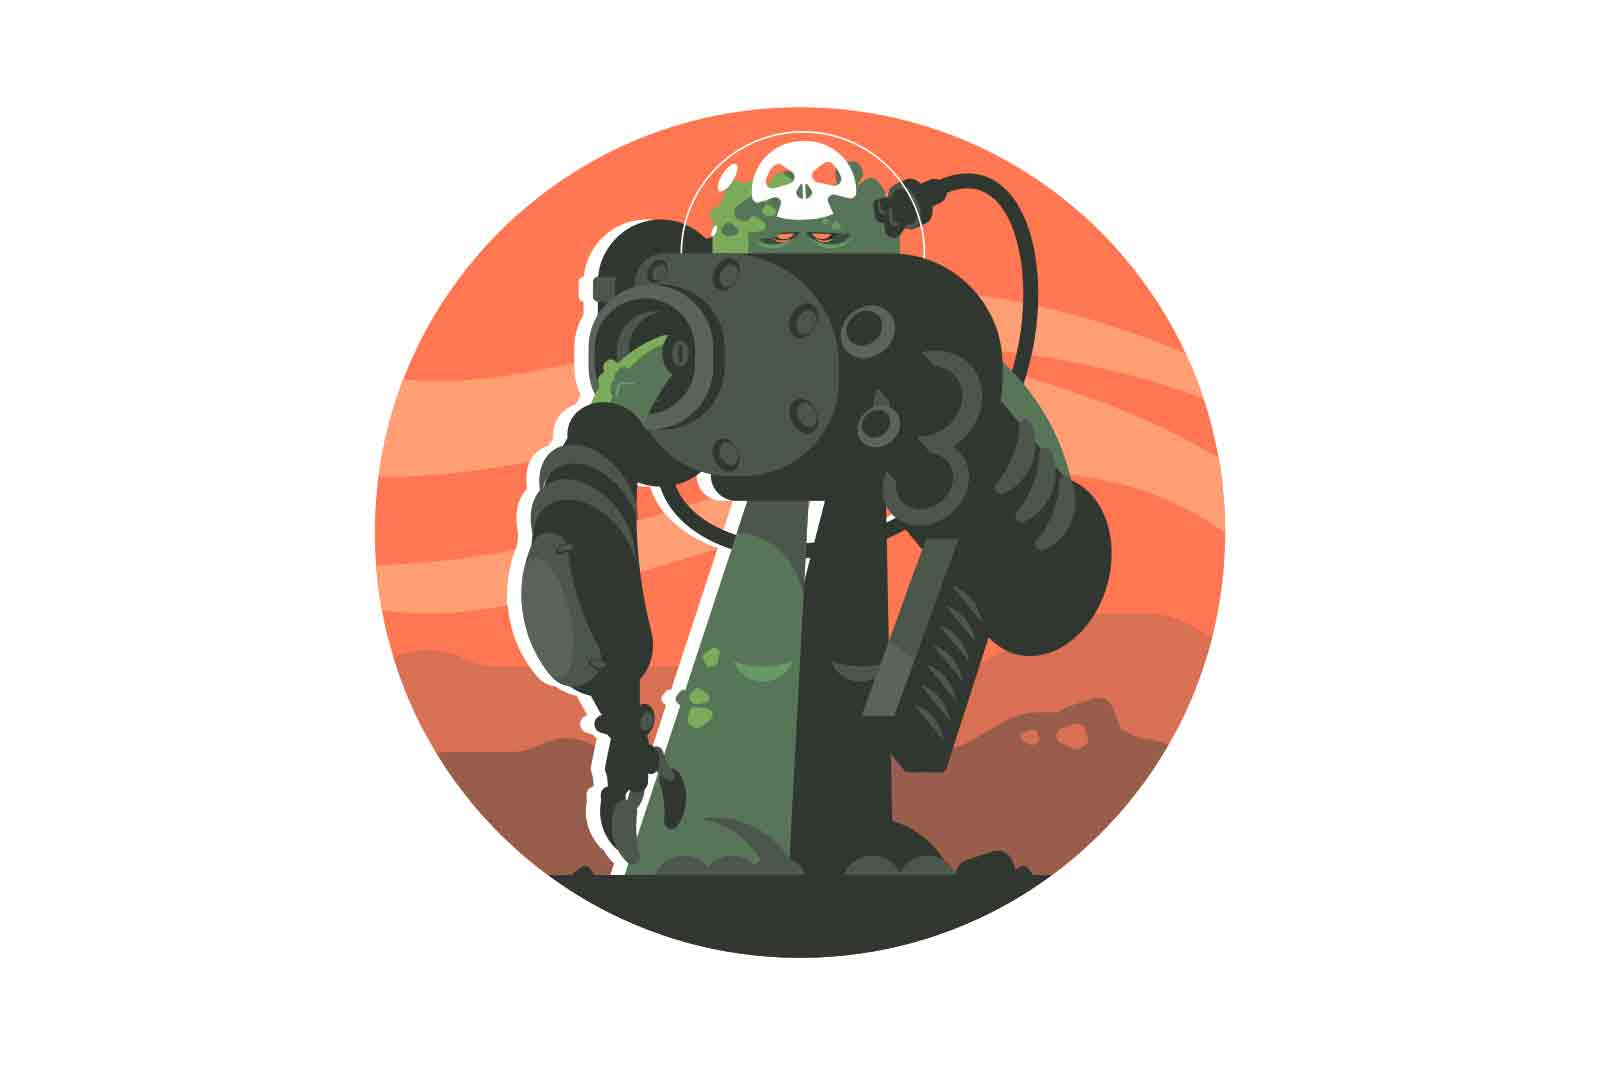 Cucumber man in spacesuit with weapon vector illustration. Veggie explore galaxy in protective gear flat style. Mission, outer space concept